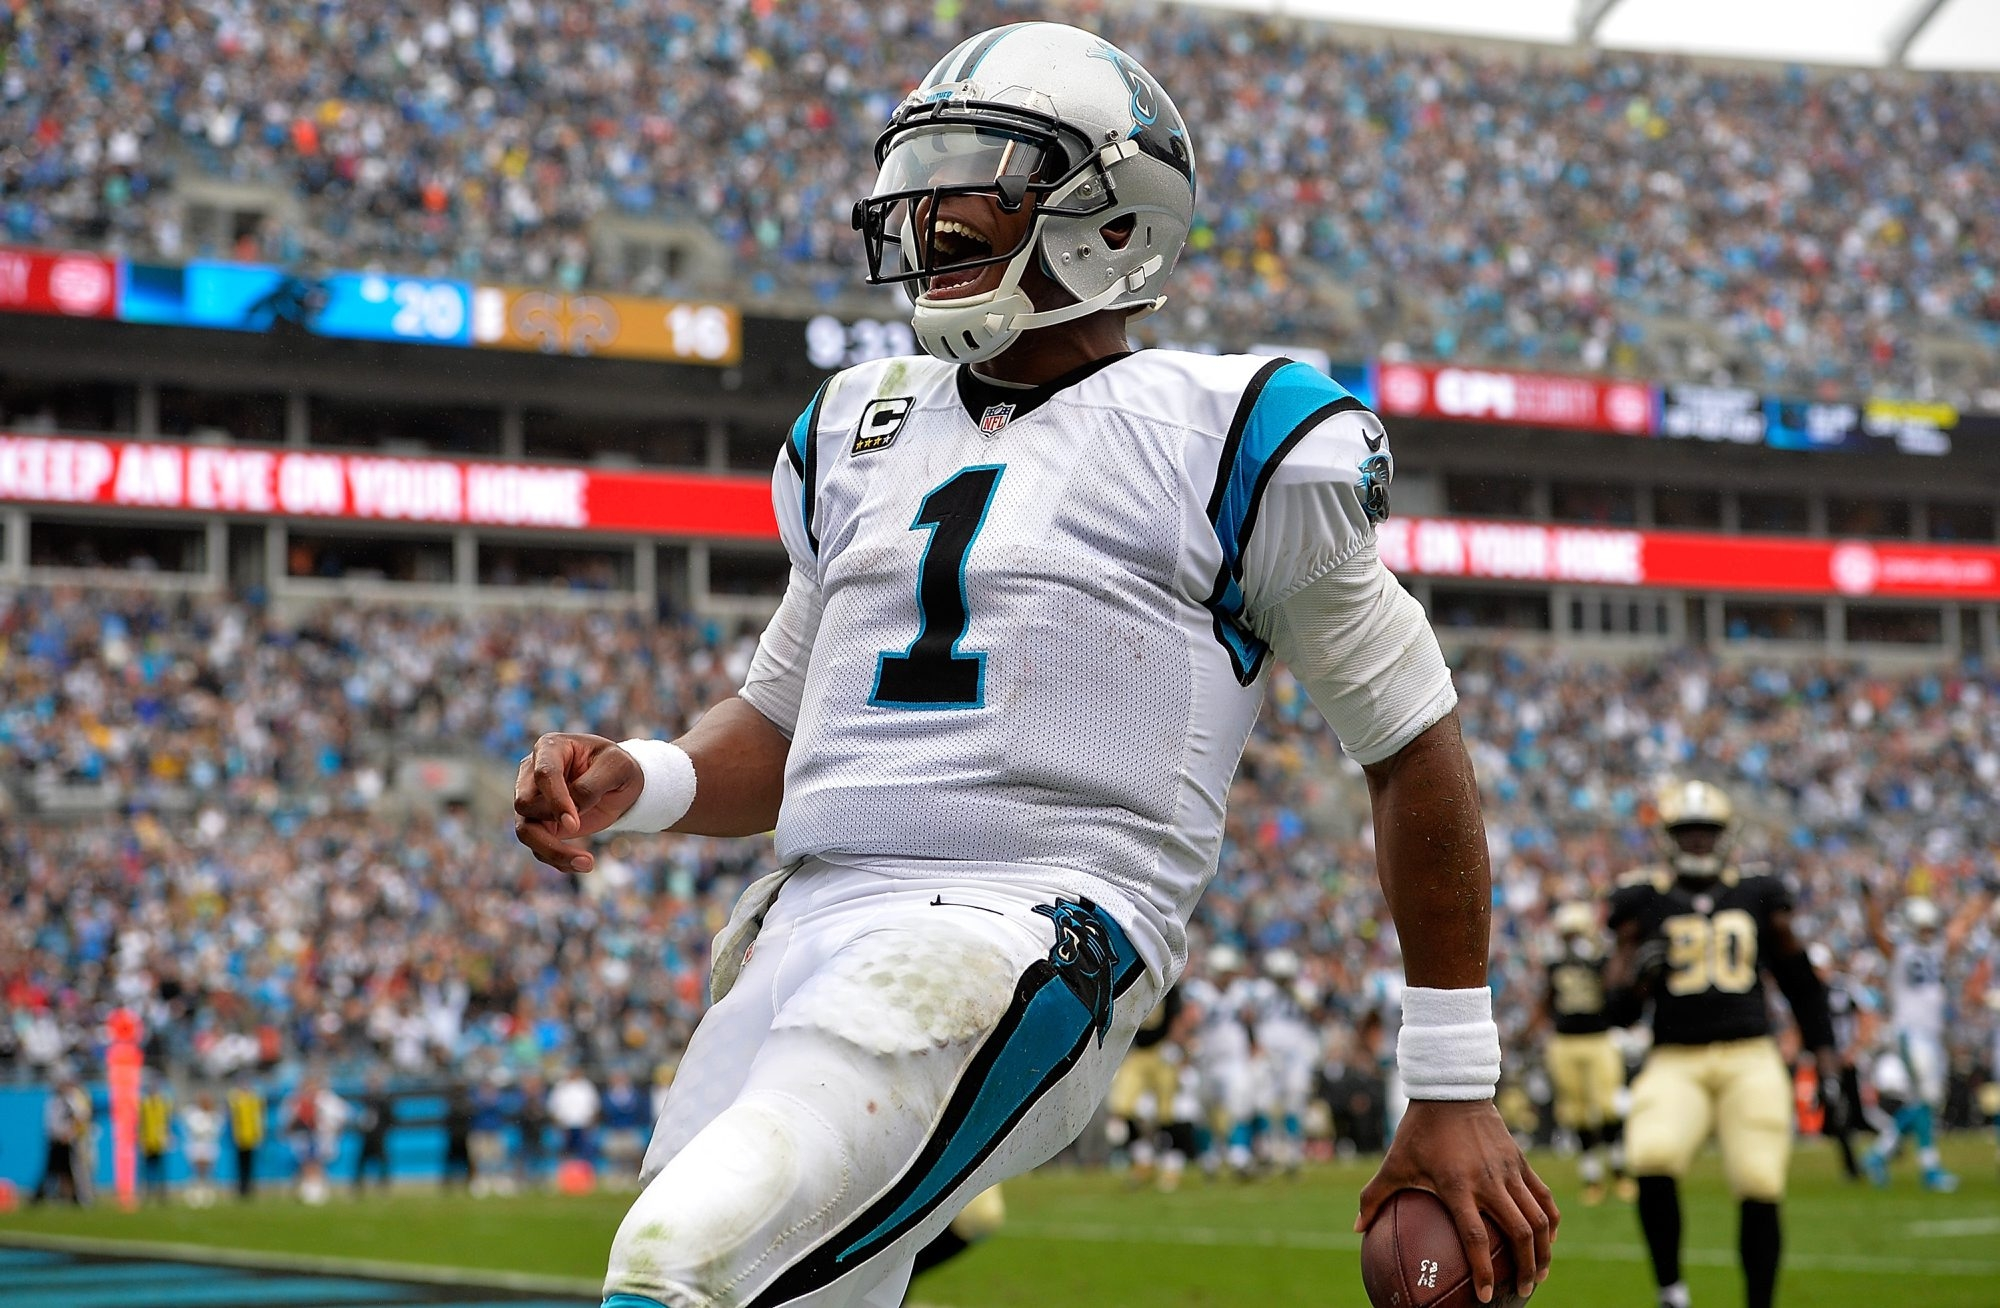 Carolina quarterback Cam Newton's accomplishments as a passer and a runner – combined with the Panthers' 15-1 record – established him as the NFL's most valuable player for 2015.